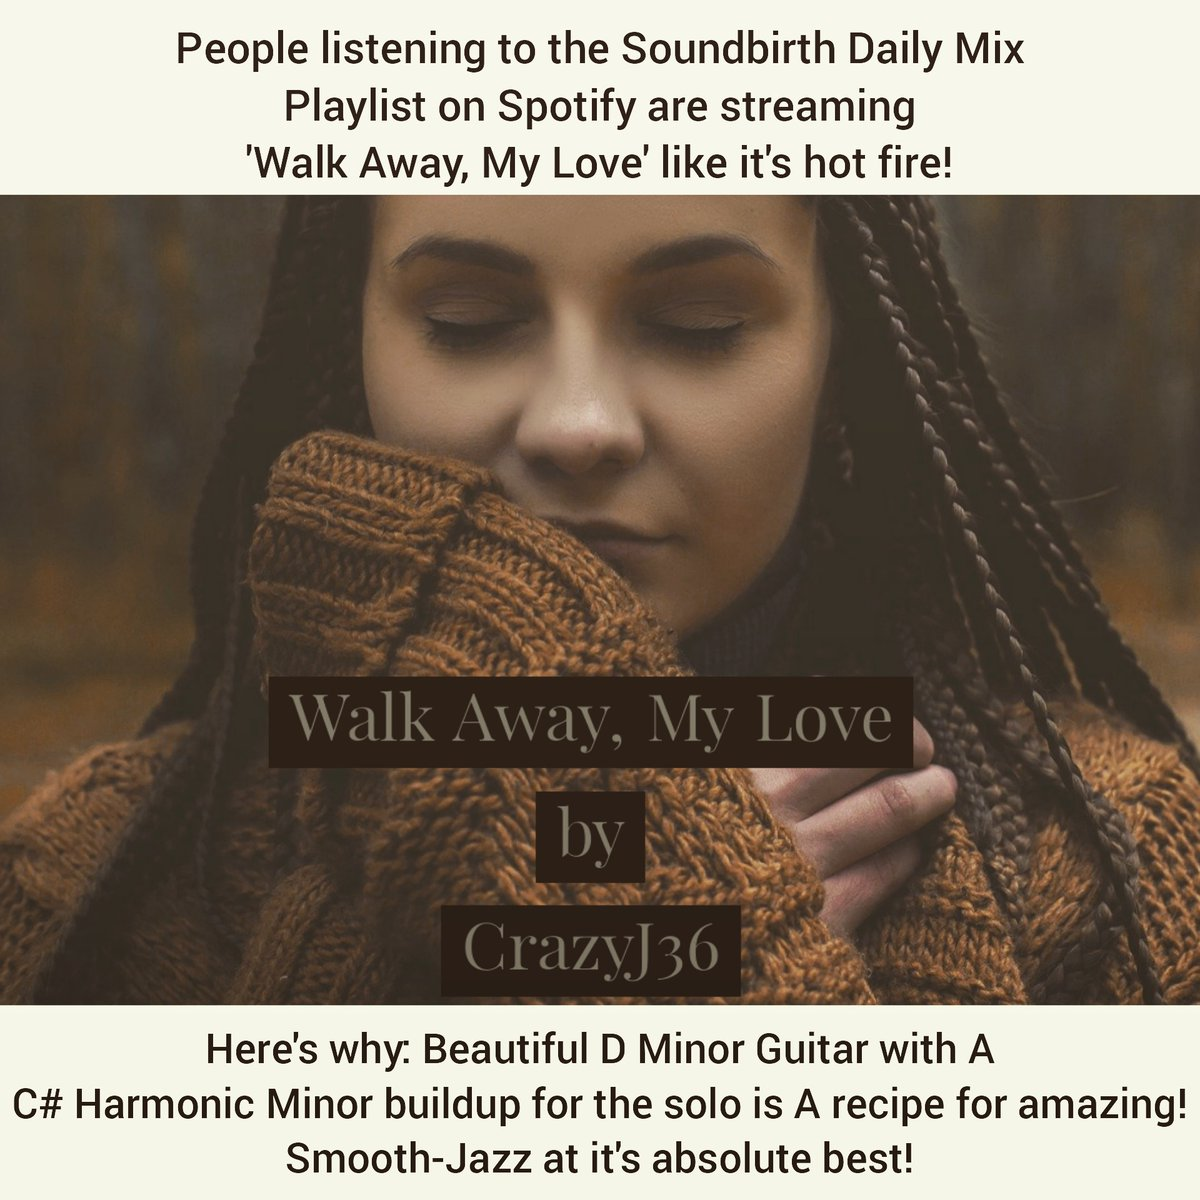 I love this song and I hope you get A chance to hear it too  . . . . . #crazyj36 #music #musica #música #newmusic #guitar #classical #classicalguitar #jazz #jazzguitar #song #lovesong #lovethis #mood #happiness #inspired #shaman #woman #photography #naturephotographypic.twitter.com/xoHVbqi46u